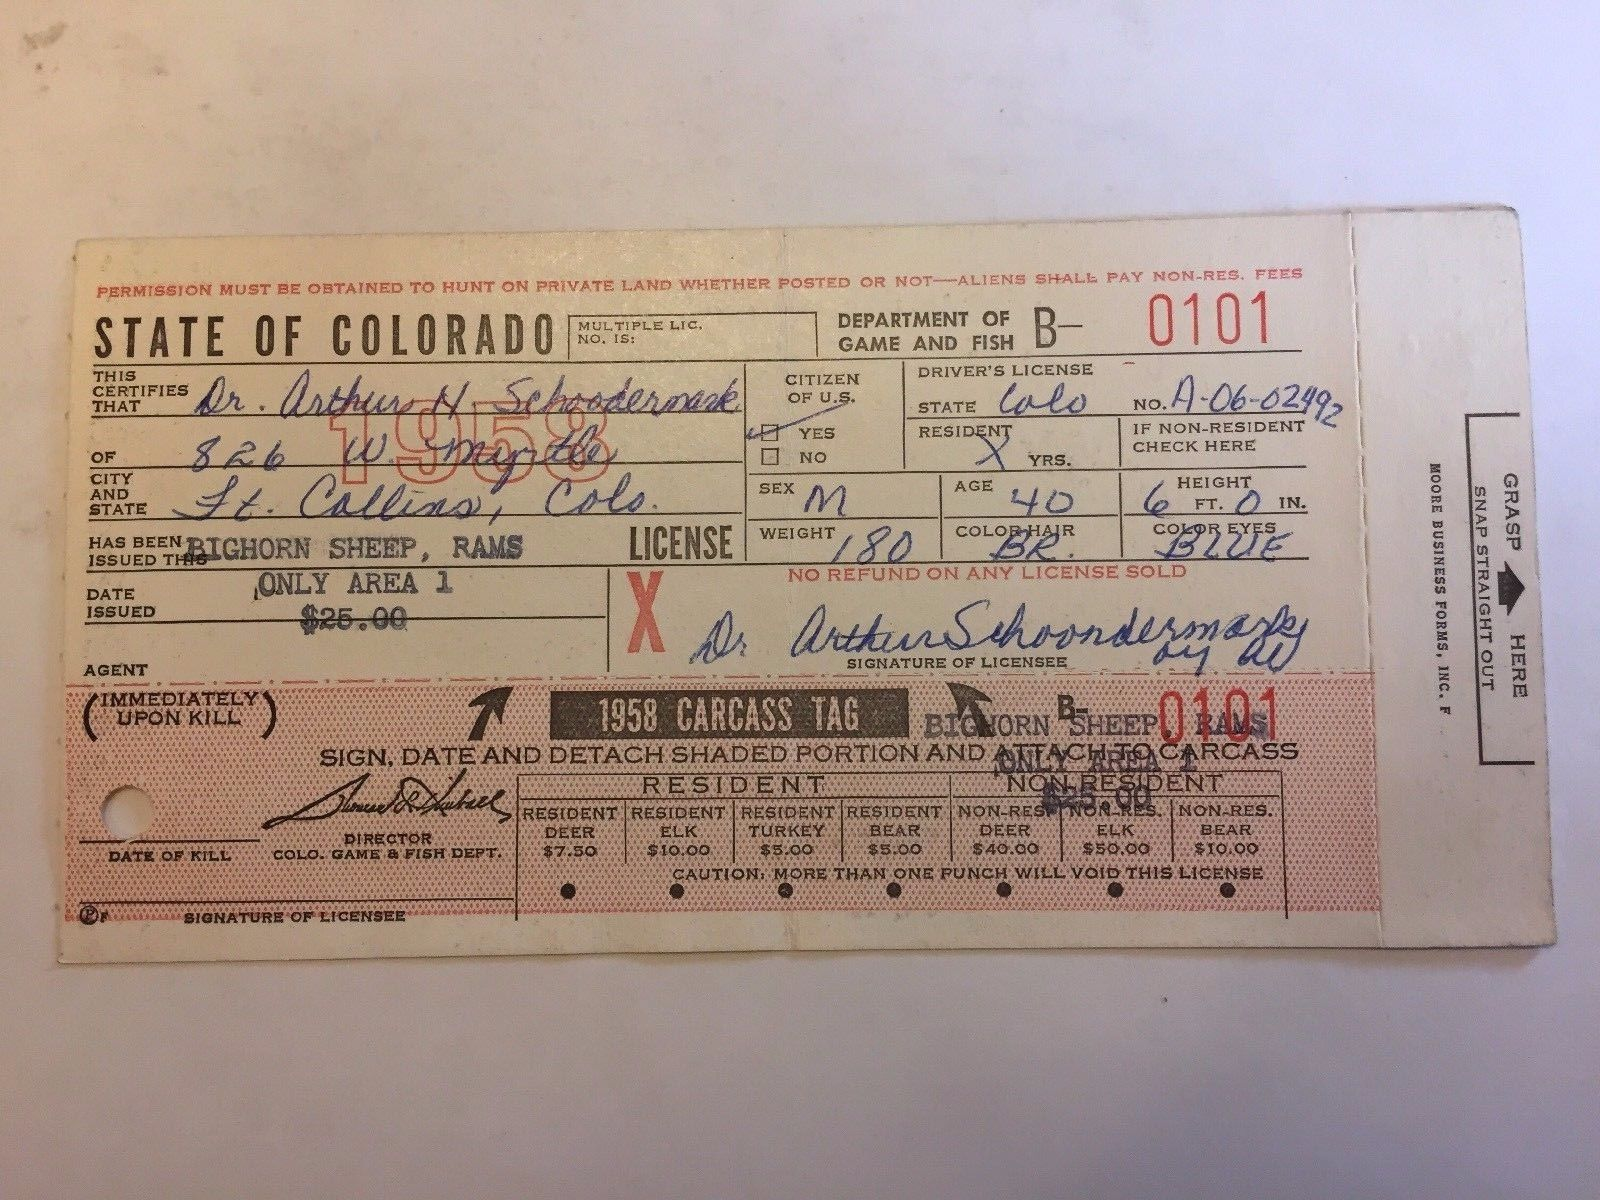 1958 state of colorado bighorn sheep hunting license